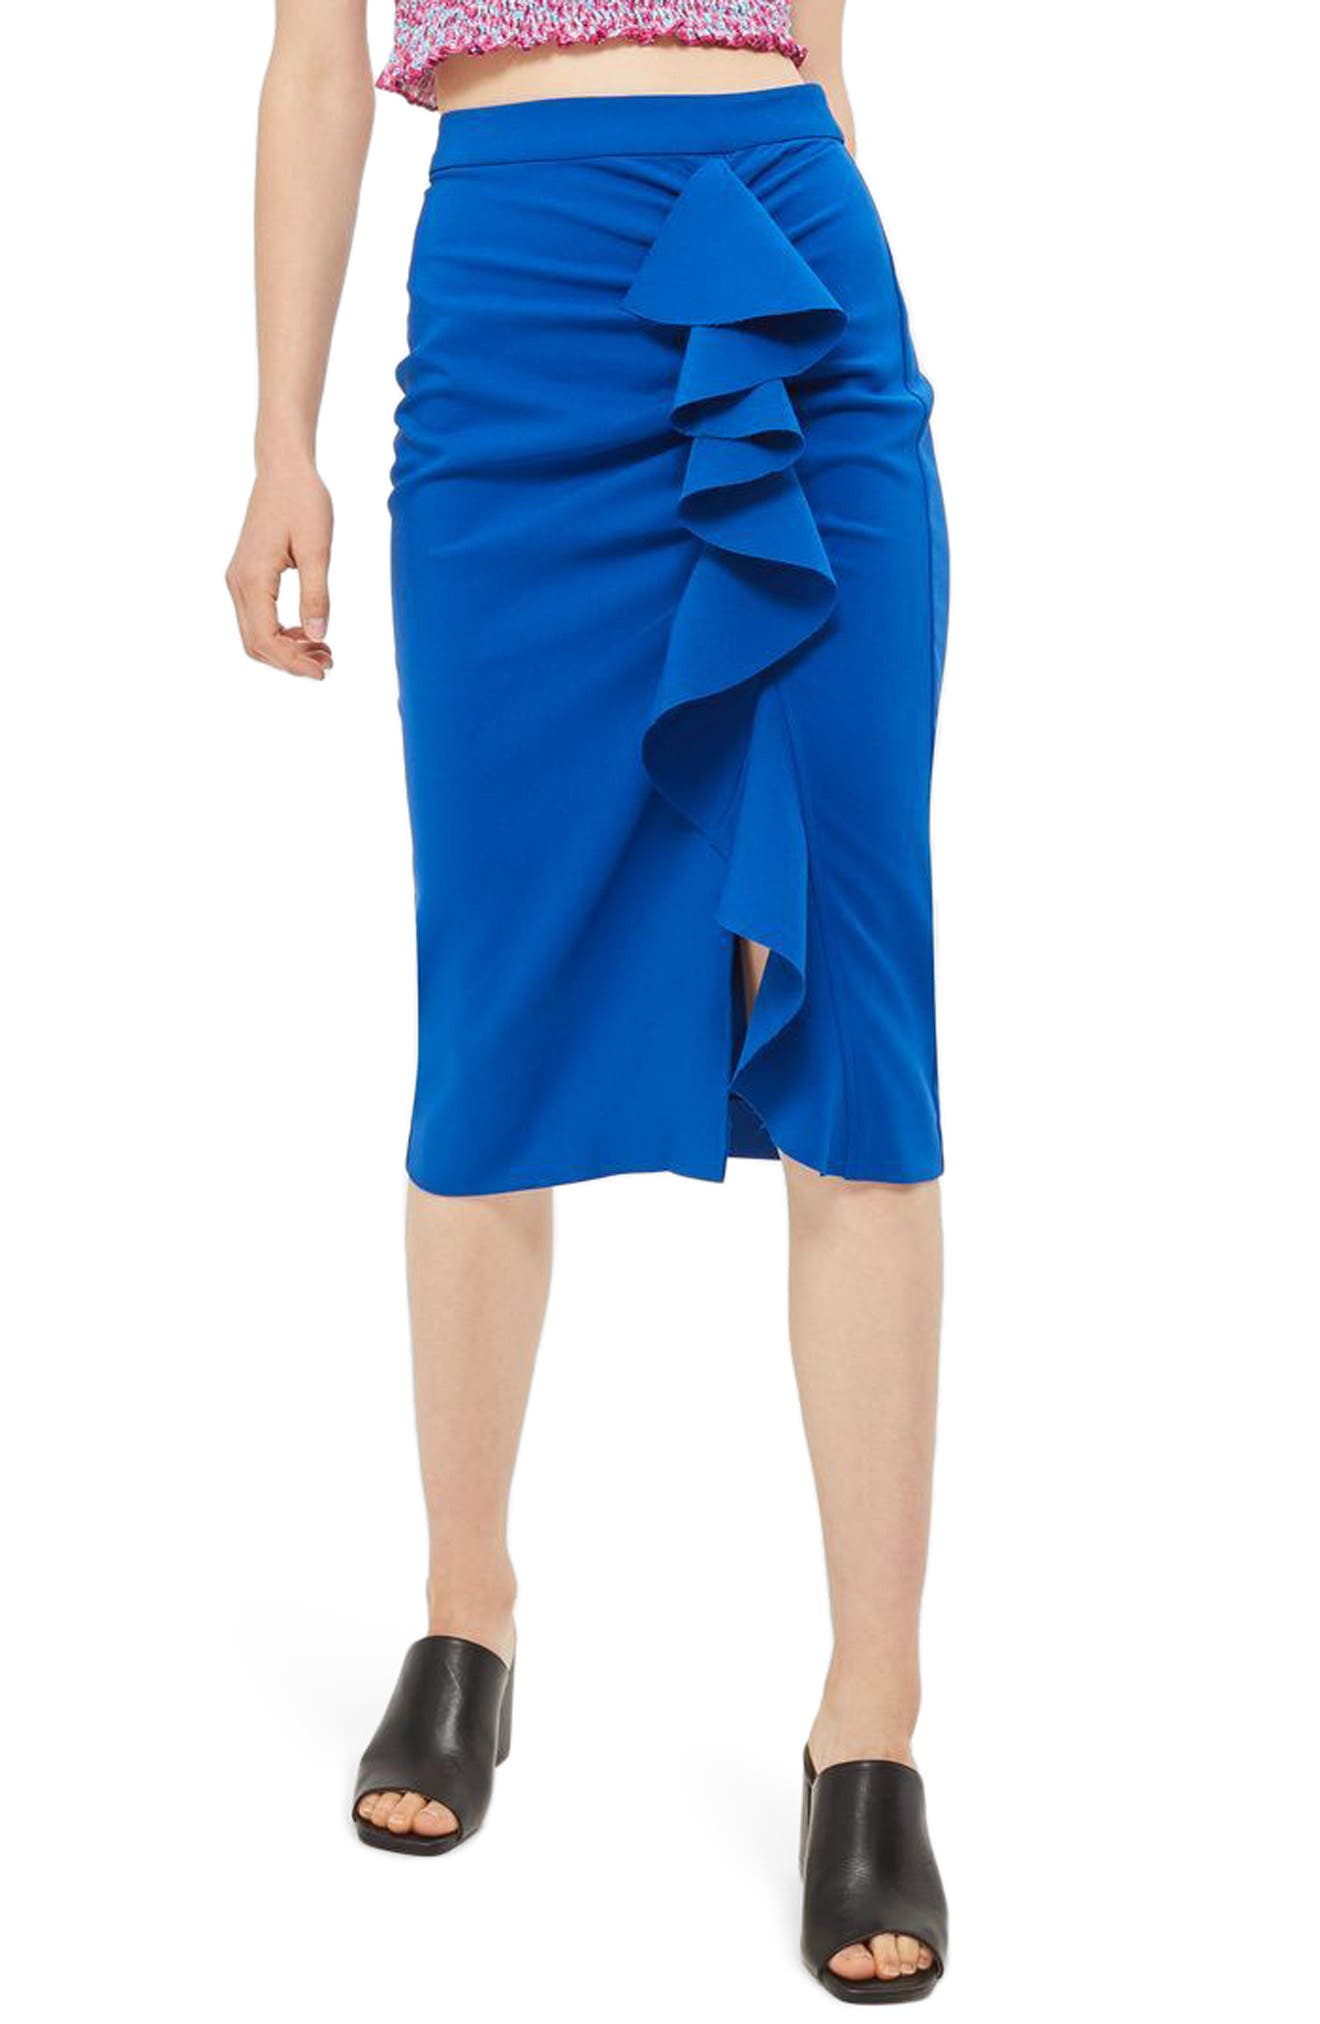 Topshop Ruffle Pencil Skirt